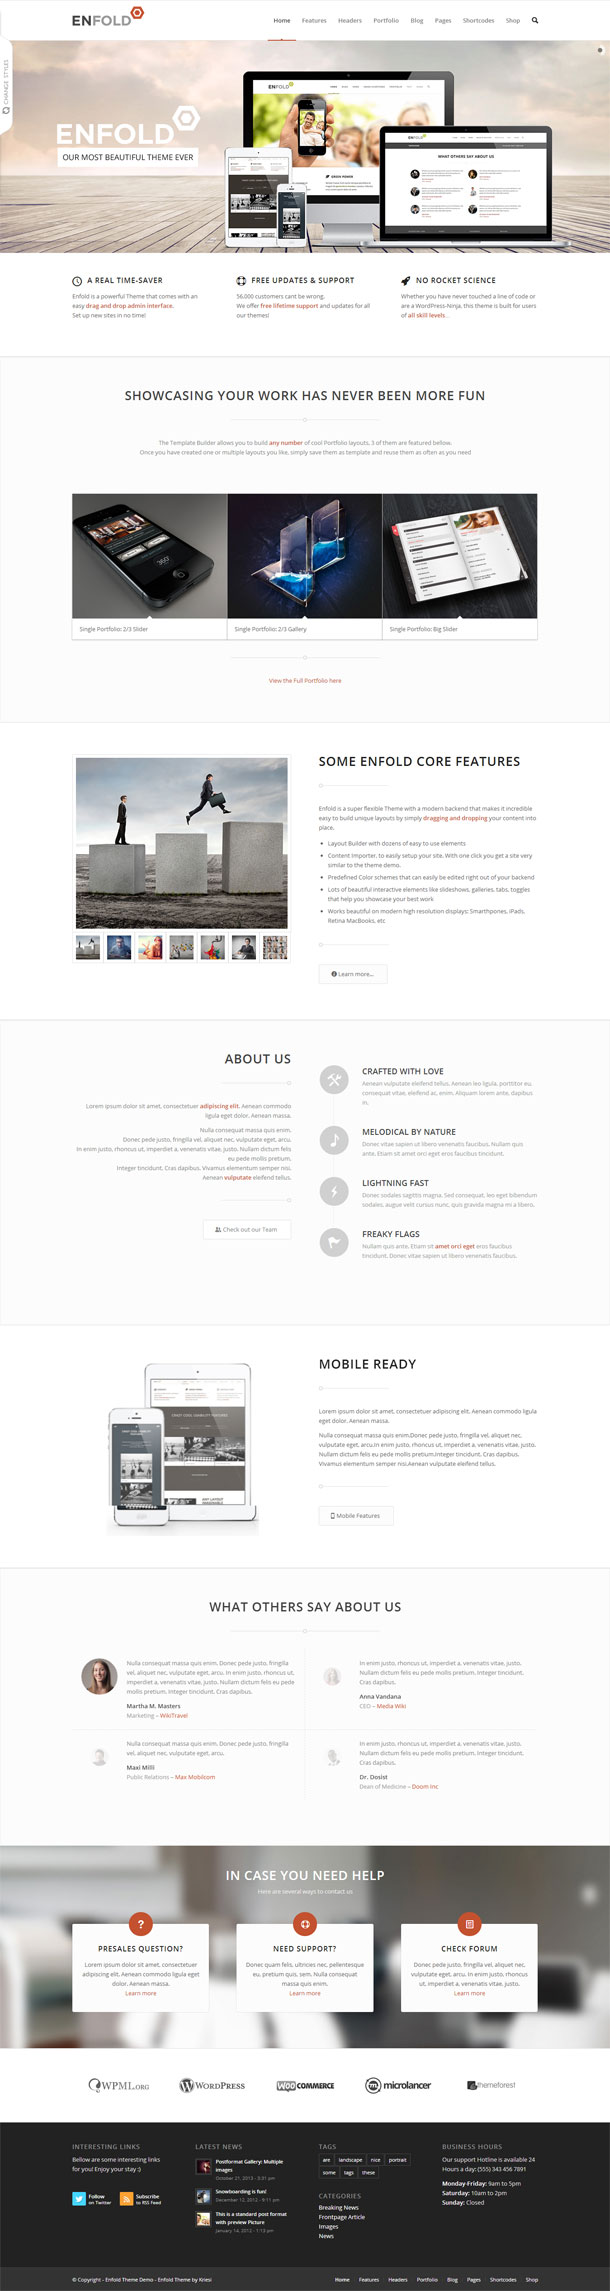 Enfold Great WordPress Theme for 2014 image